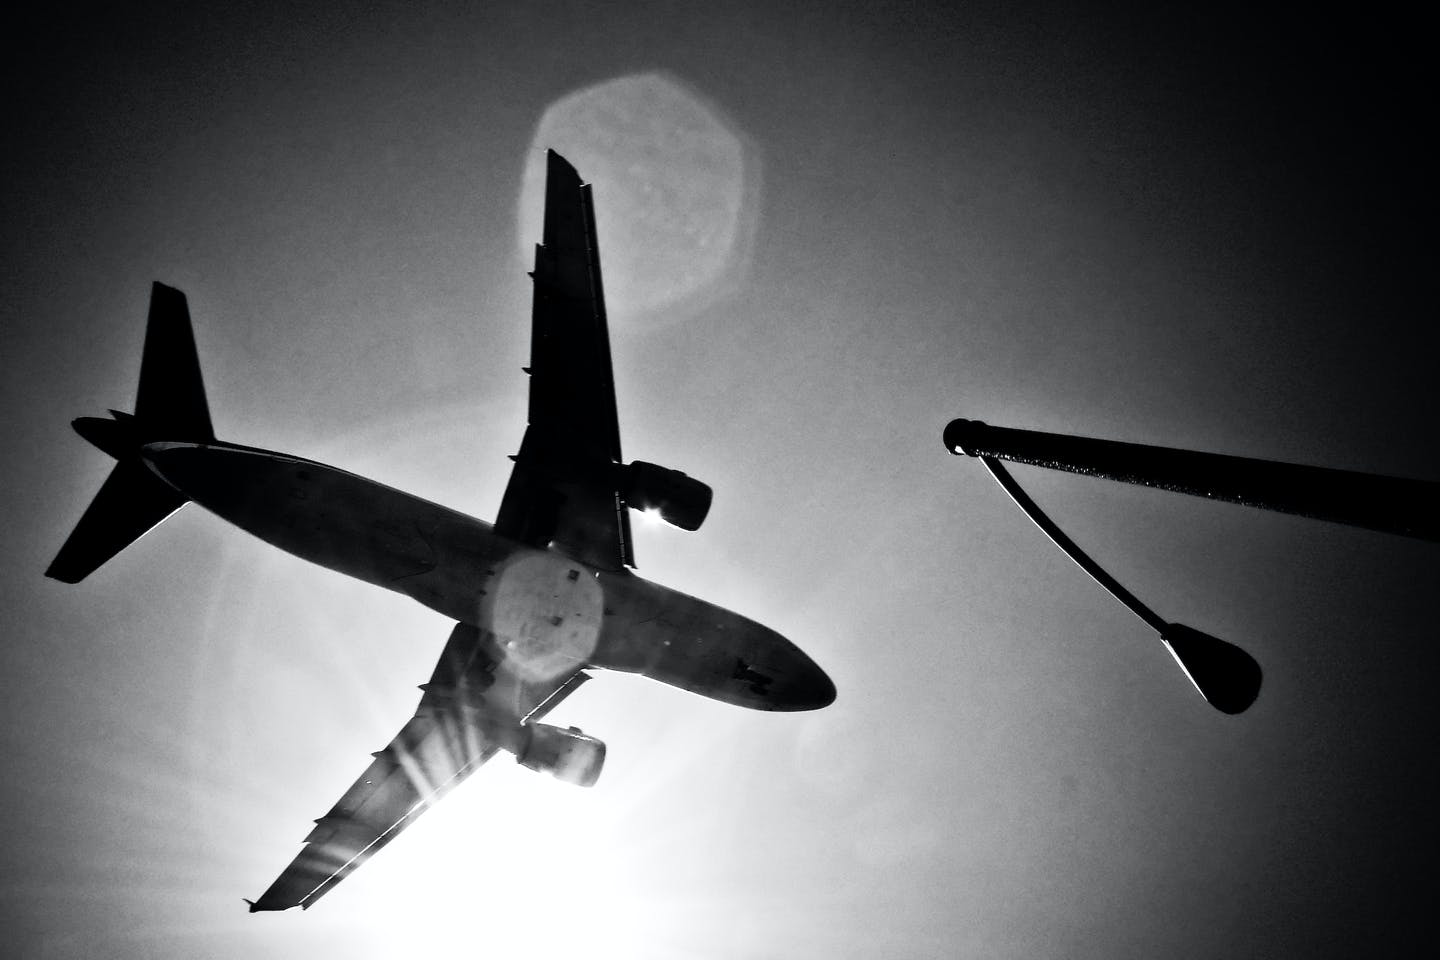 Airplane in grayscale